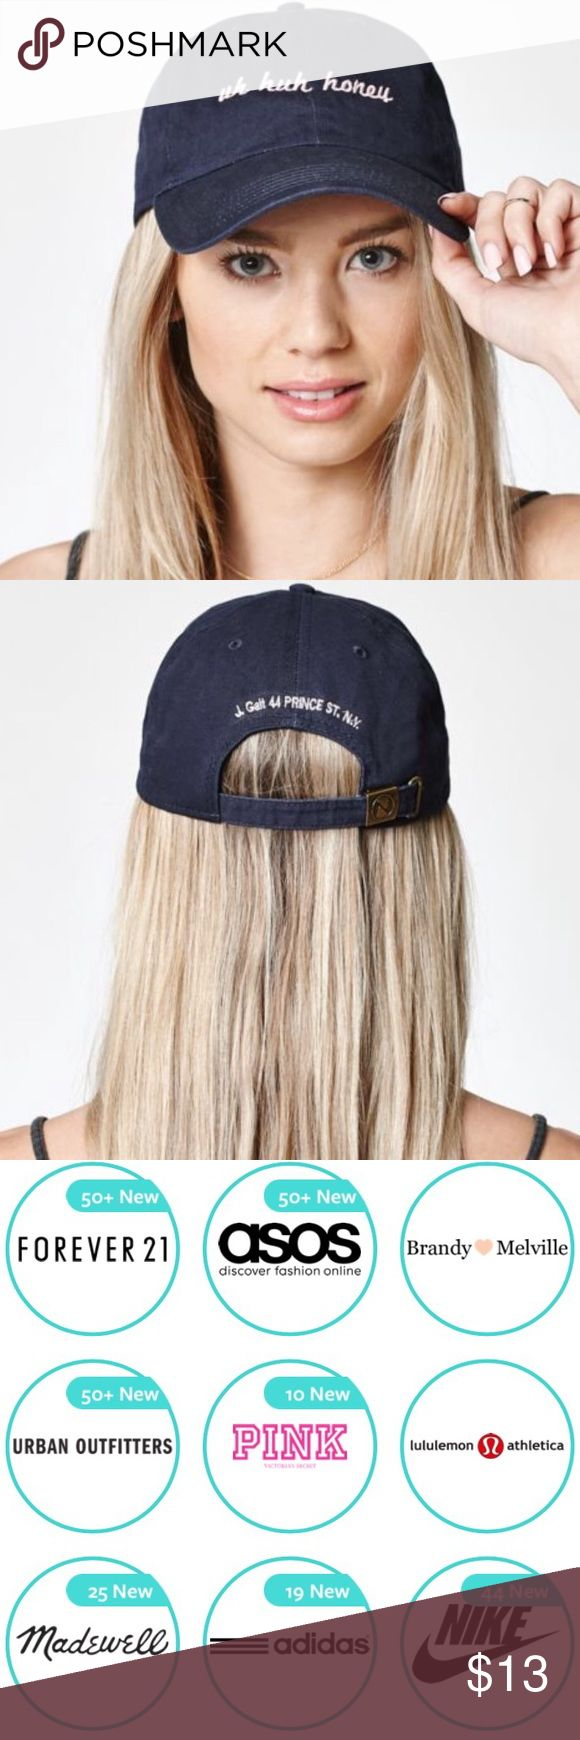 Brandy Melville Uh Huh Honey Hat $13 Brandy Melville uh huh honey cap with the code S5UT :) download the Dote Shopping app and get $5 off your purchase + FREE shipping! Enter the promo code at checkout and discount will be taken off!! You can apply the $5 to many other brands! Comment if you're having a hard time and I'll invite you. Let me know what you got, Happy Shopping!! :) Brandy Melville Accessories Hats